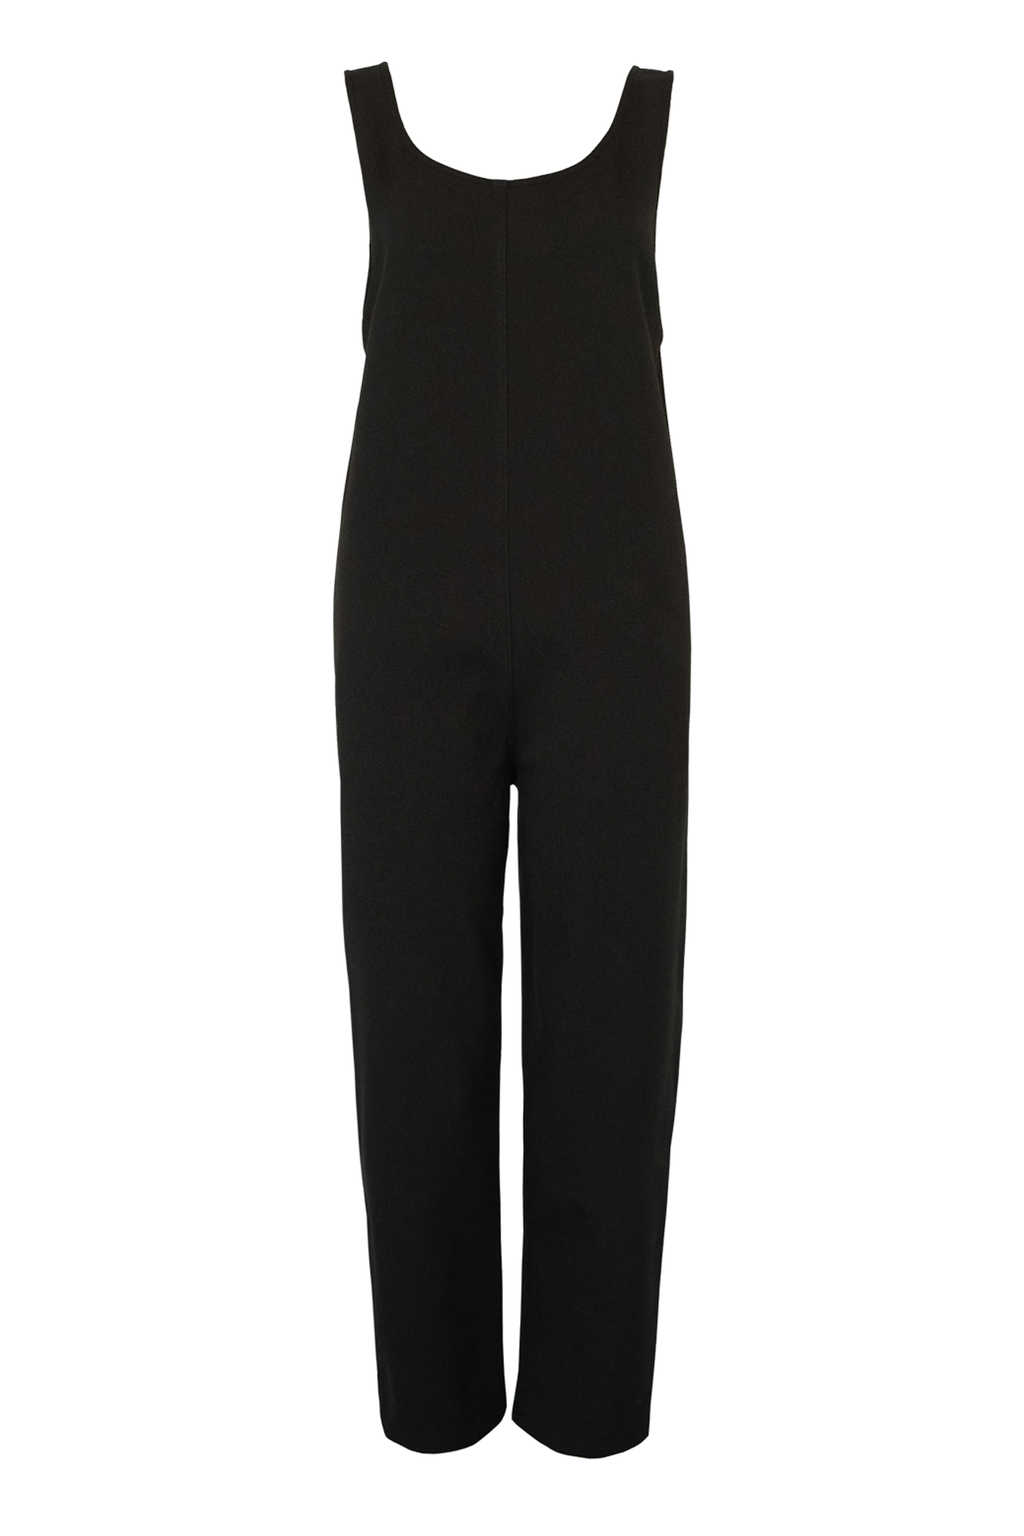 Chunky Weave Jumpsuit - Black